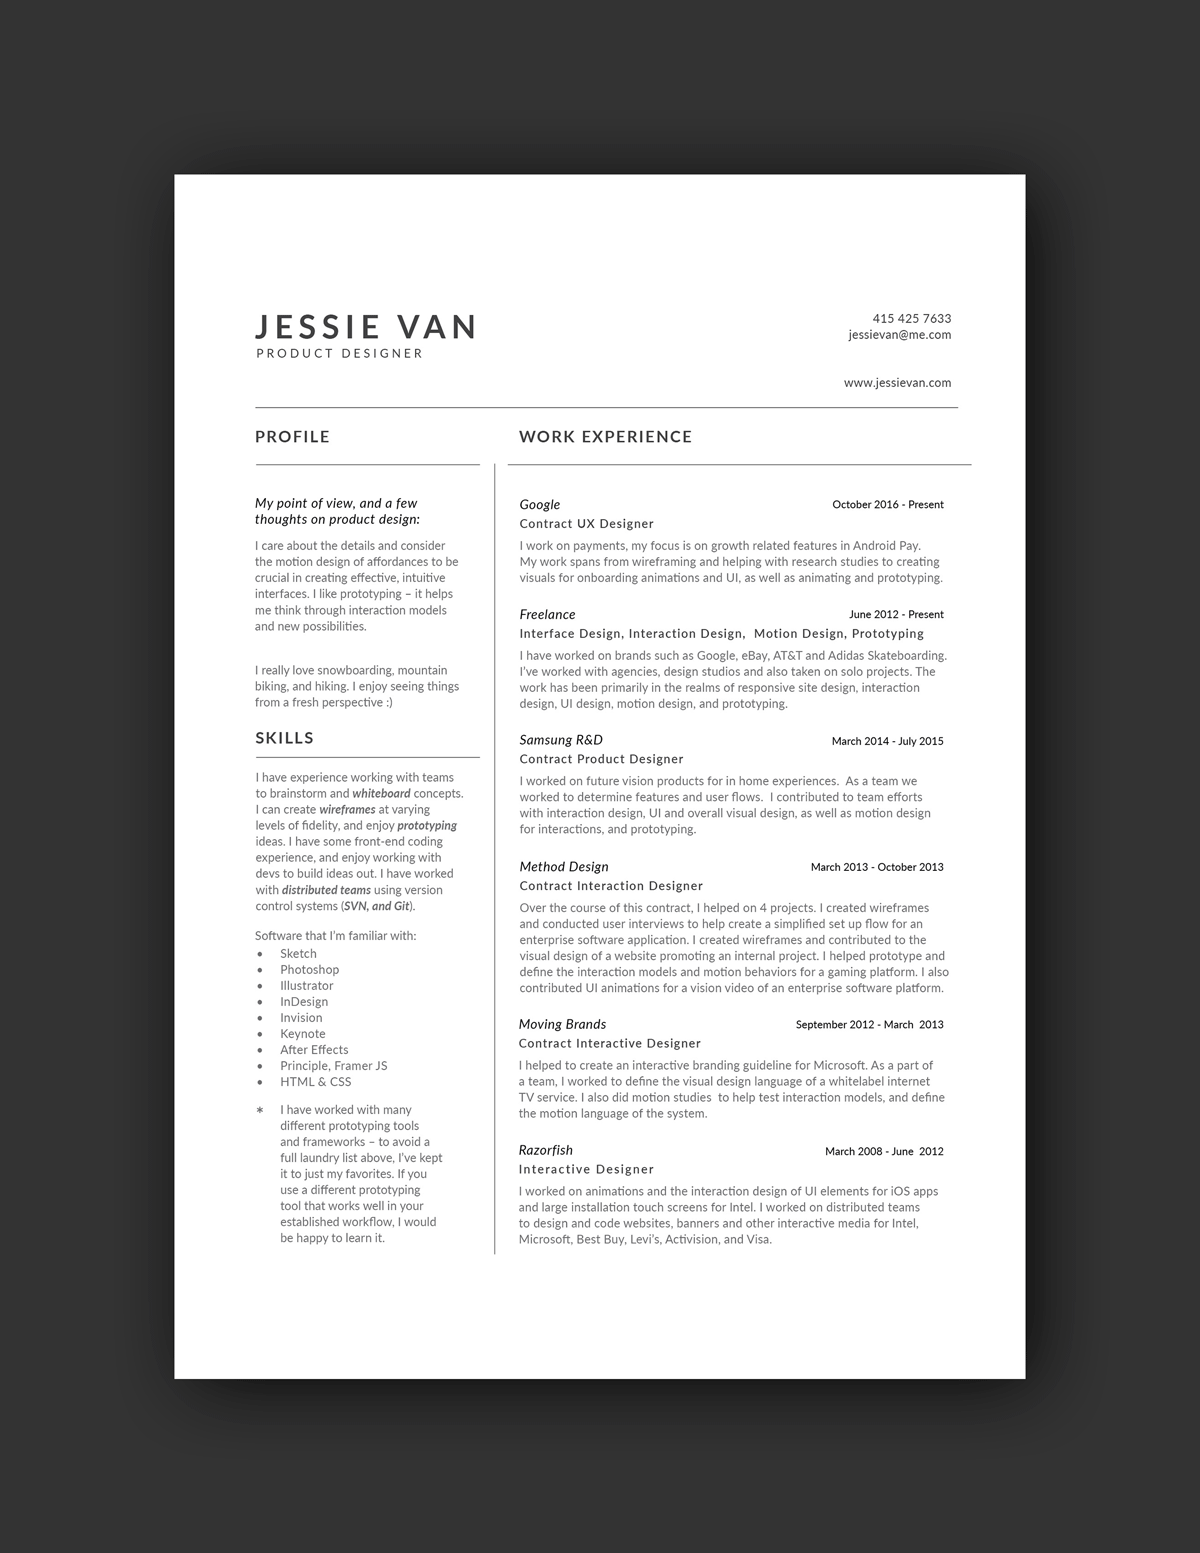 Tool Design Engineer Cover Letter 21 Inspiring Ux Designer Resumes And Why They Work